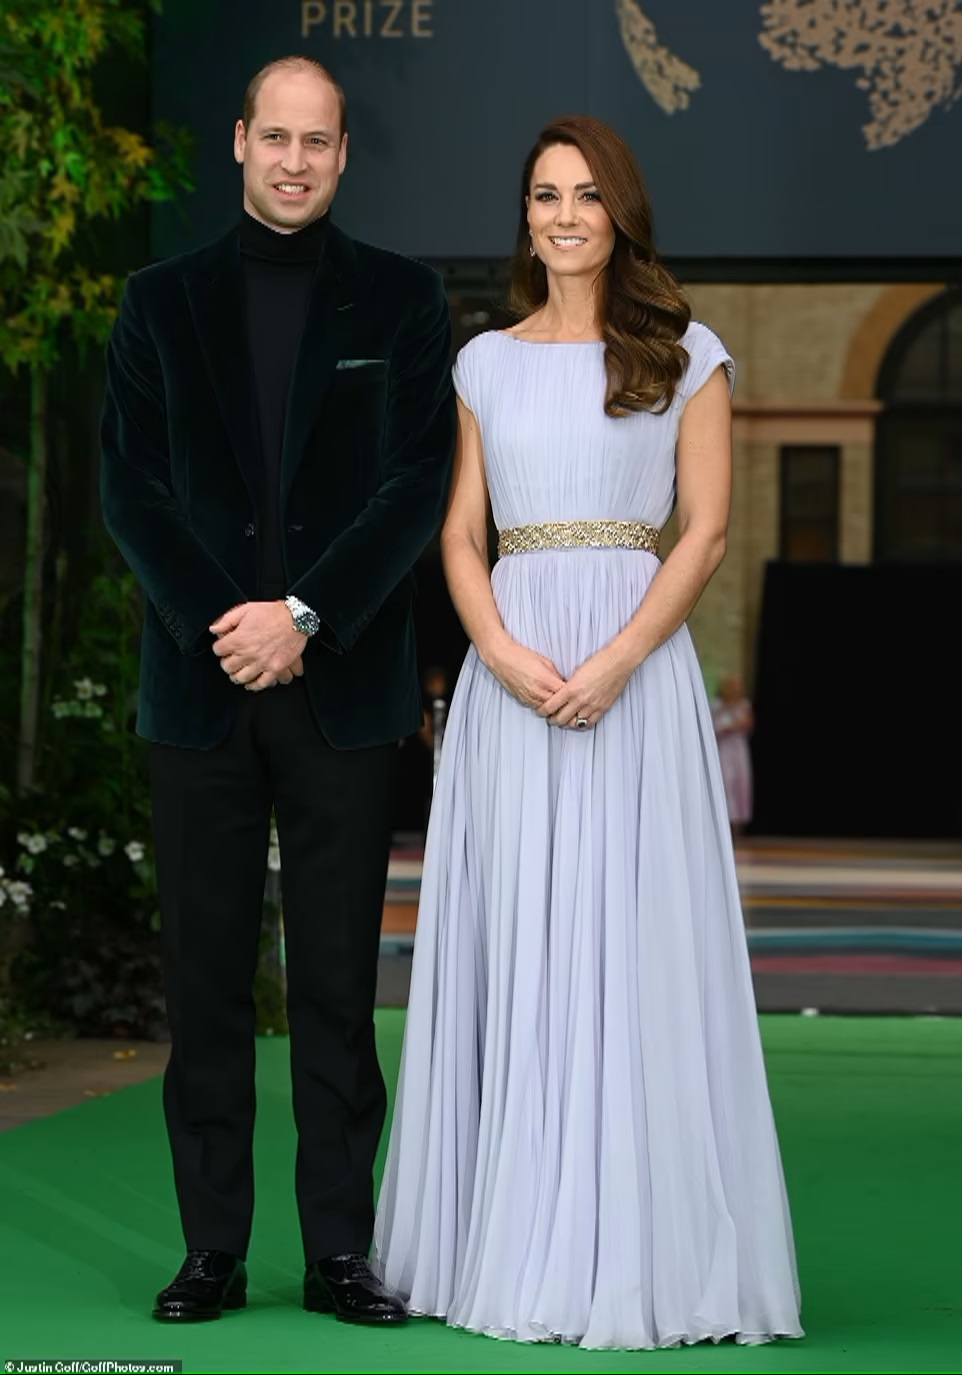 Duchess Kate and Prince William attend the Earthshot eco-prize ceremony